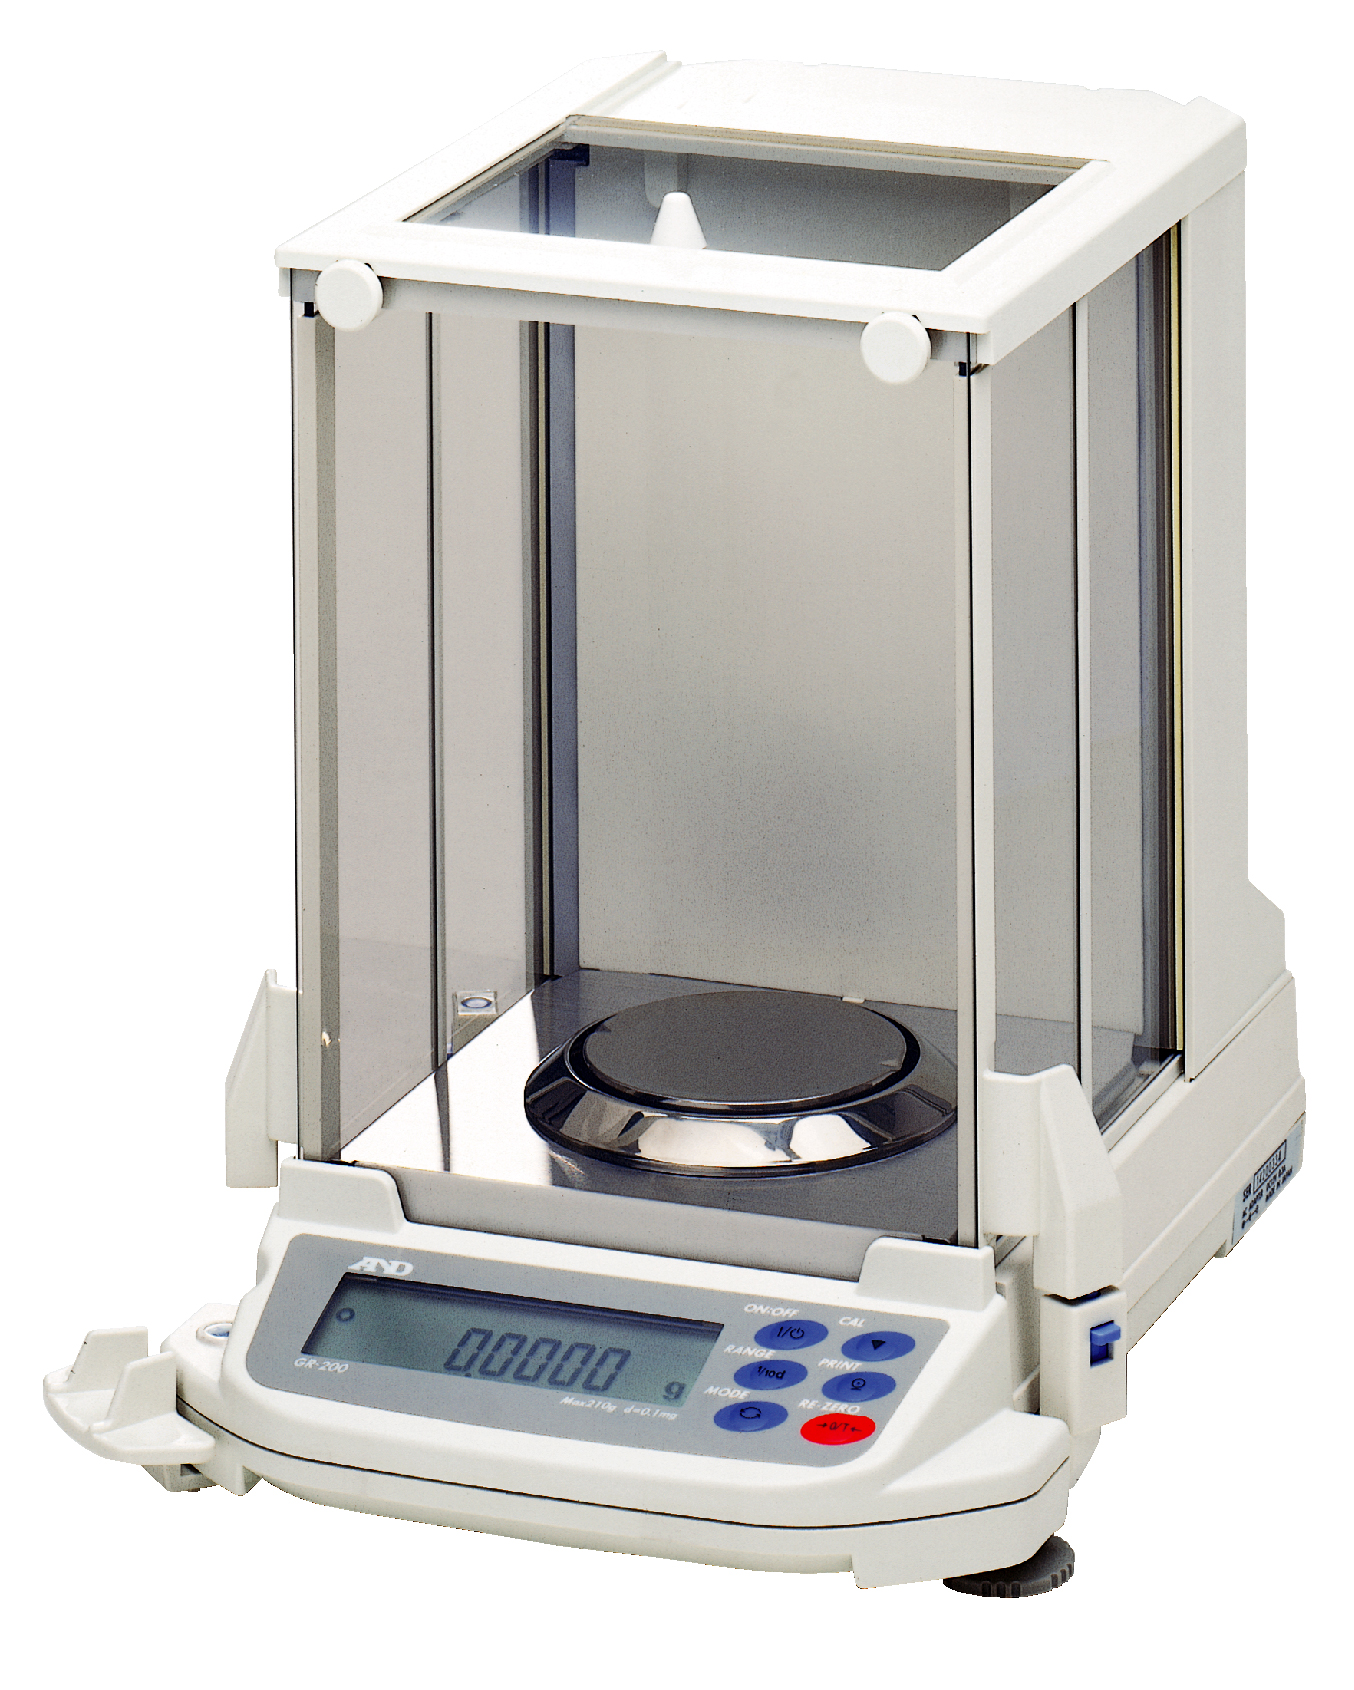 A&D GR SERIES SEMI-MICRO ANALYTICAL BALANCE WITH AUTOMATIC SELF-CALIBRATION